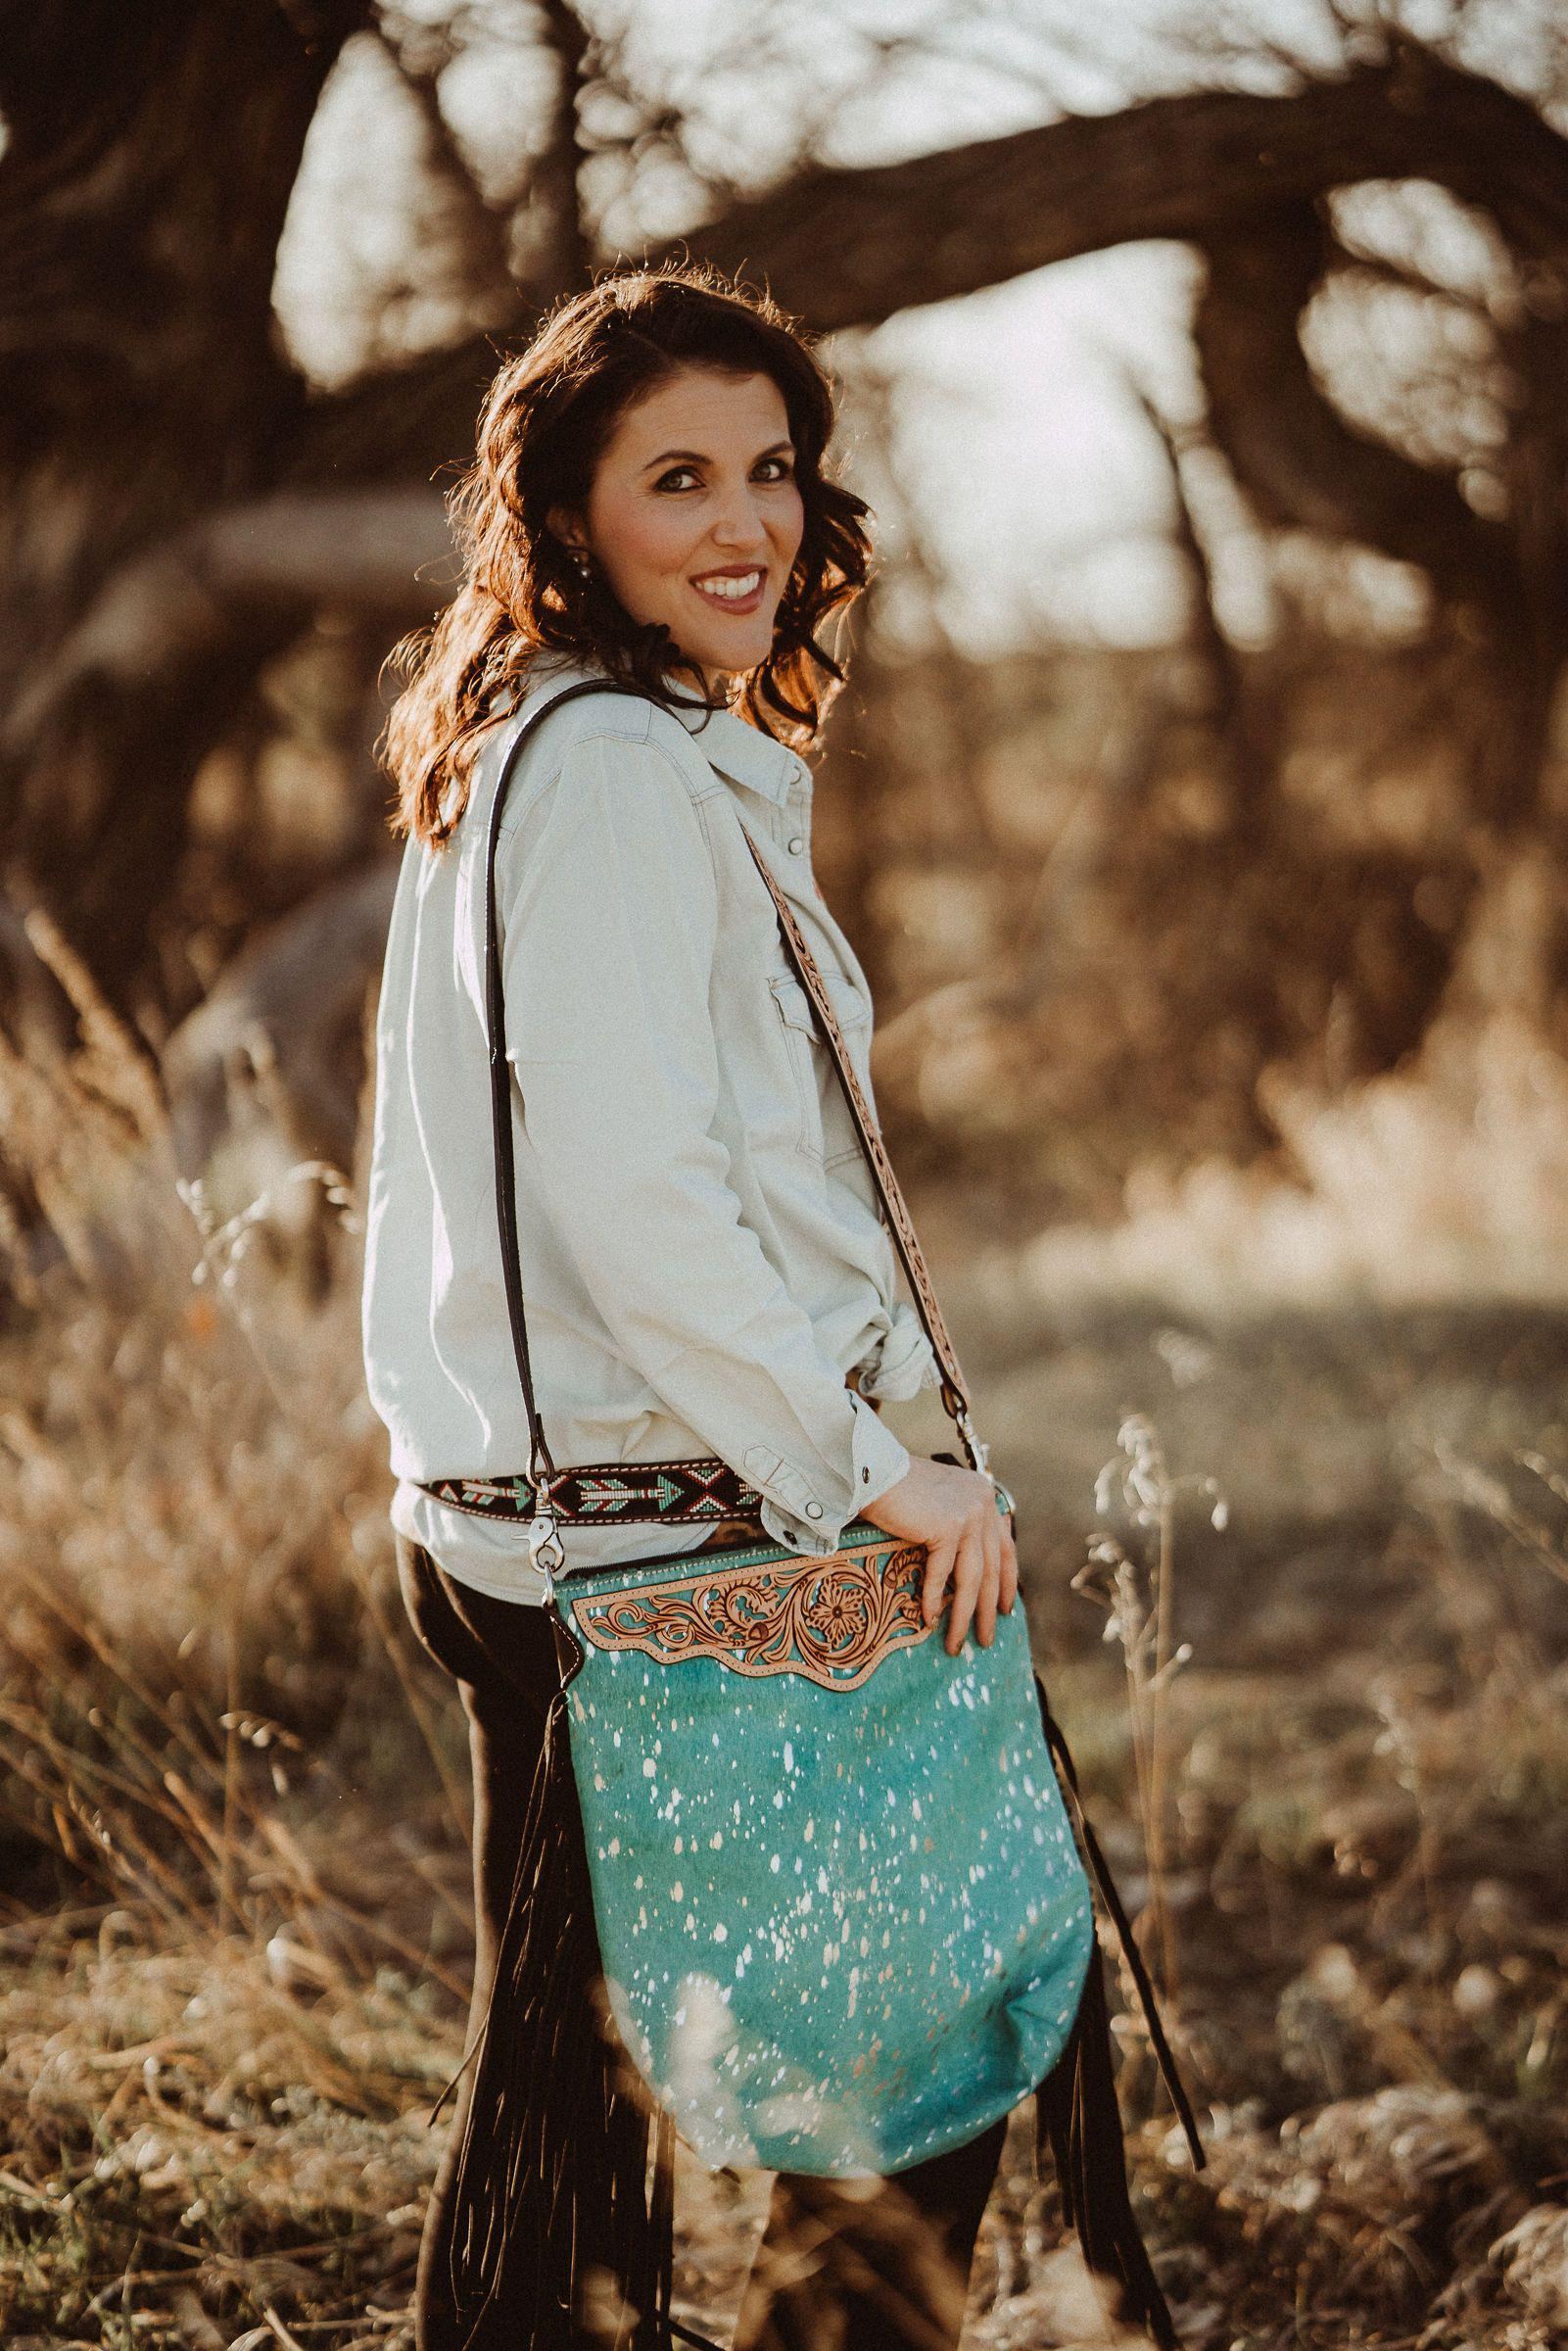 Large Hair on Hide Turquoise Crossbody Handbag with Fringe